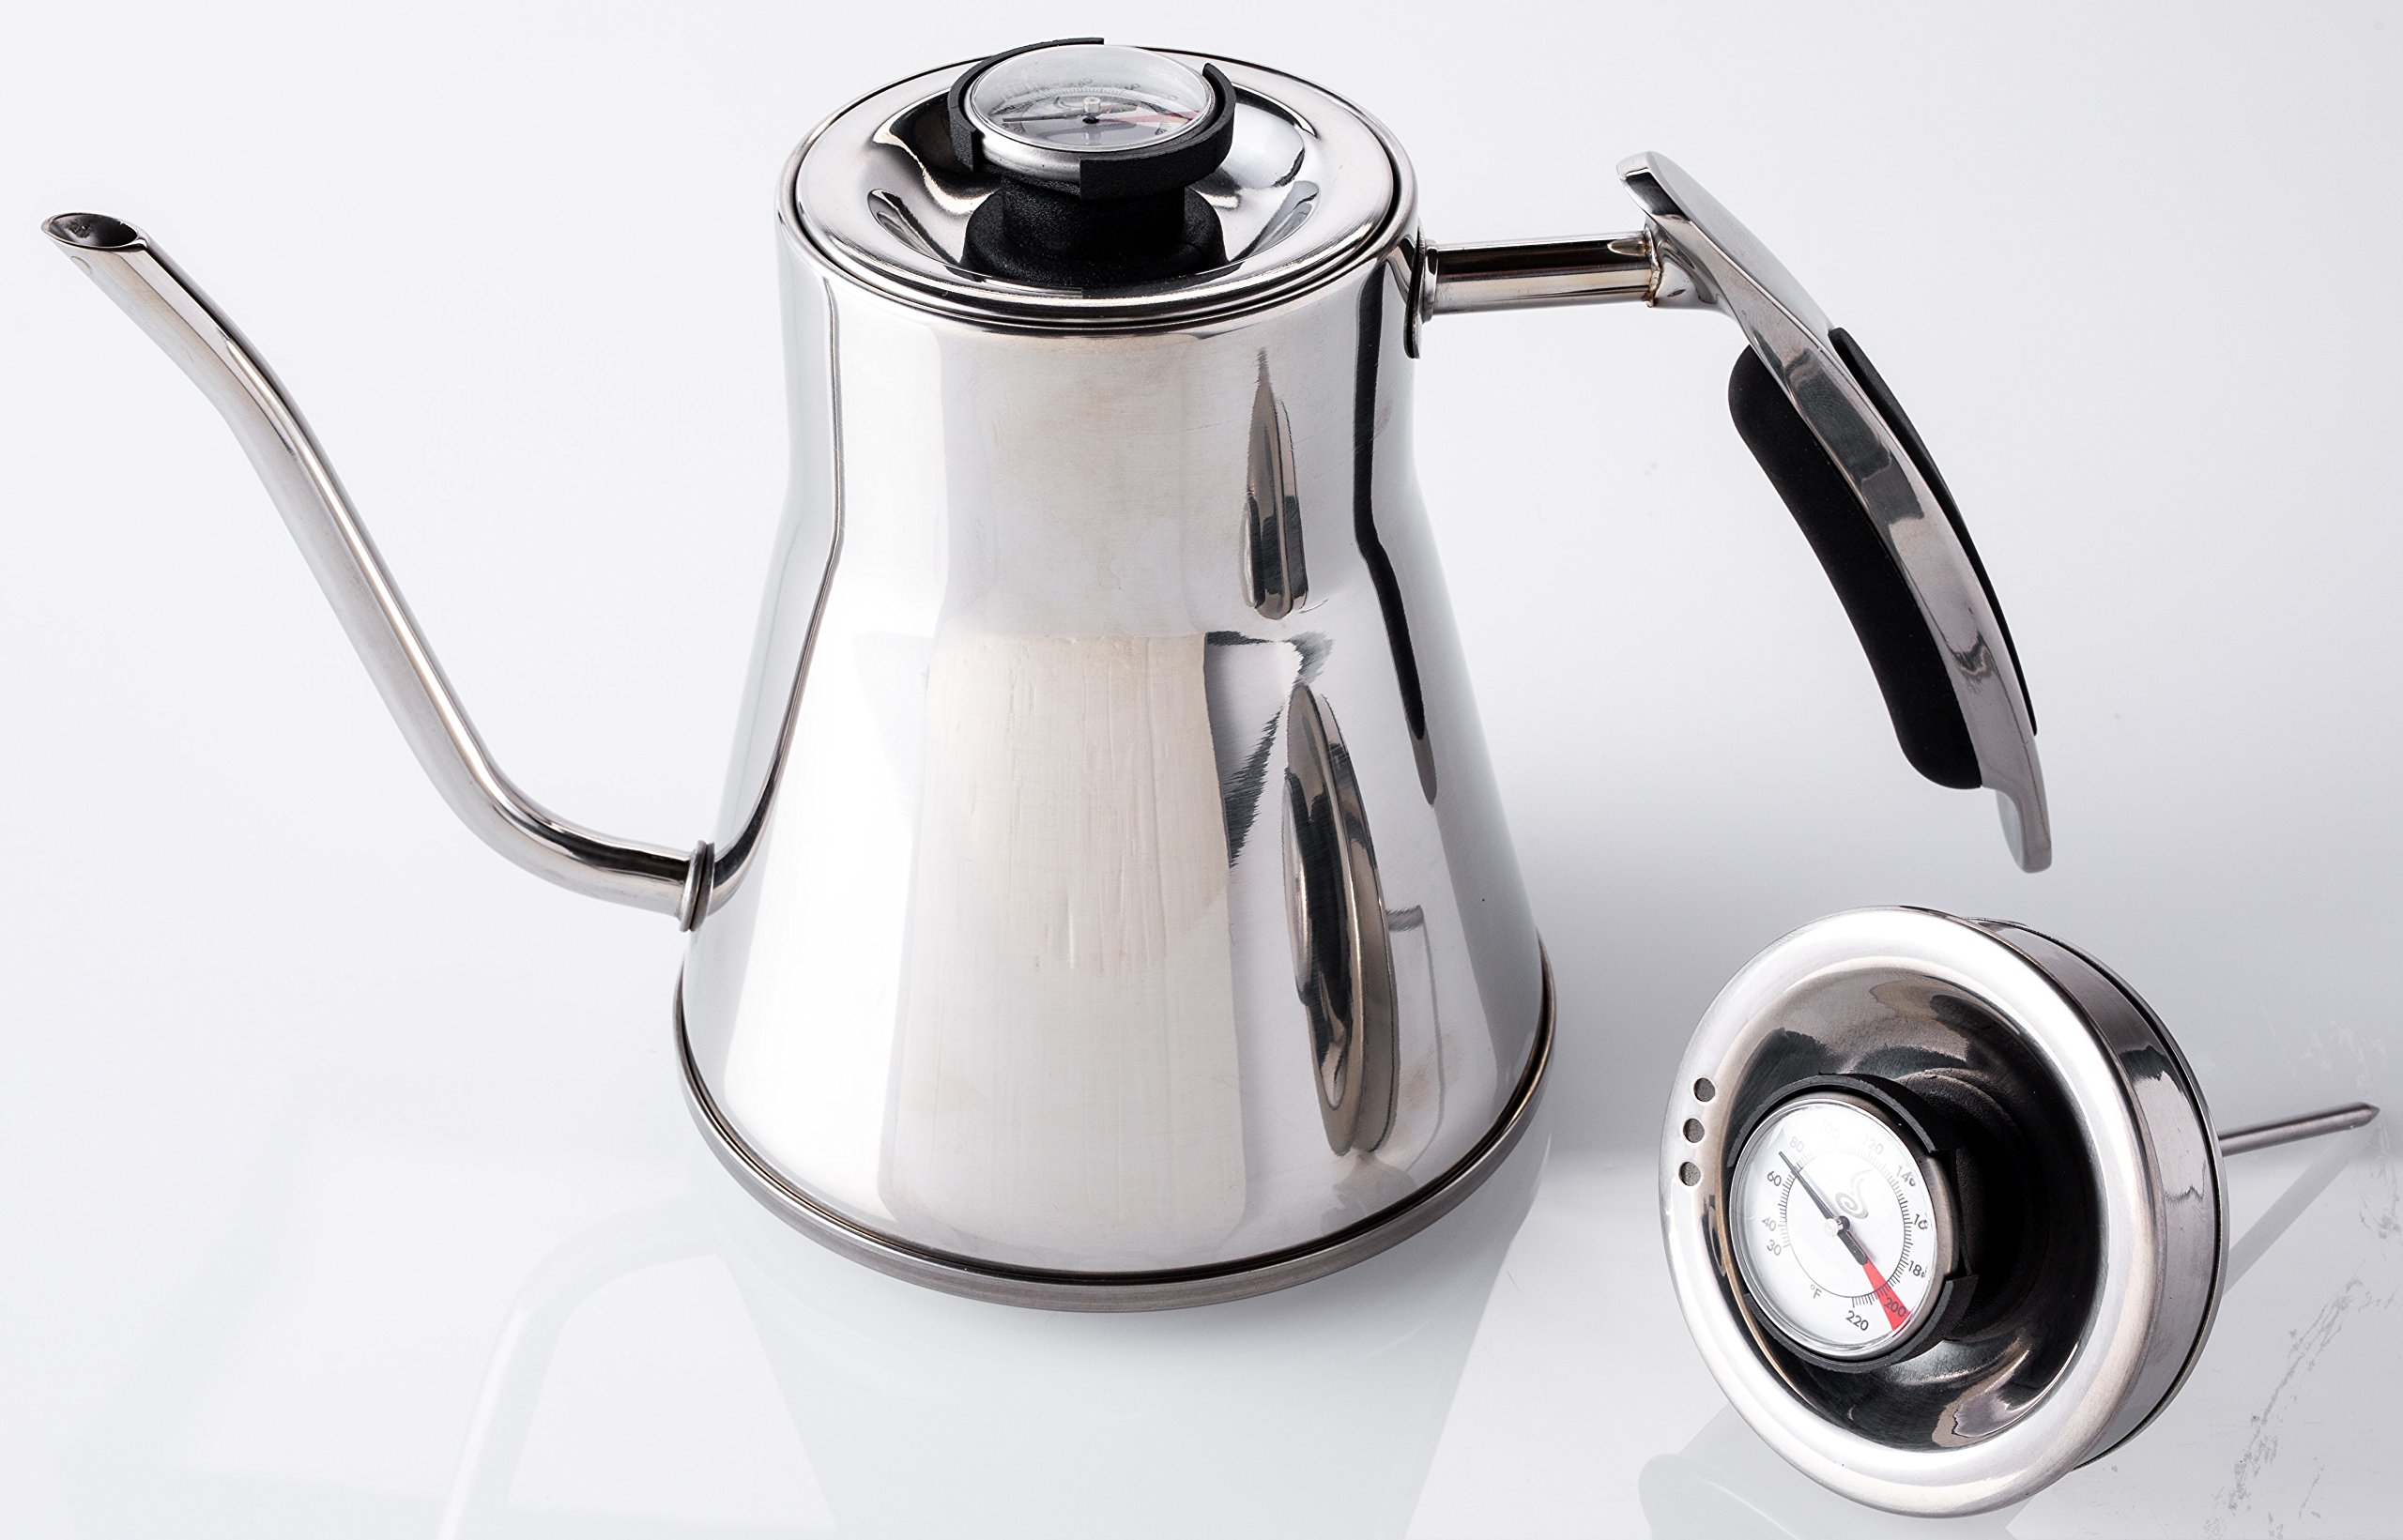 Java Concepts JC-17010 Pour Over Kettle, Stainless Steel  Pour Over Kettle, Stainless Steel, by Java Concepts (Image #1)